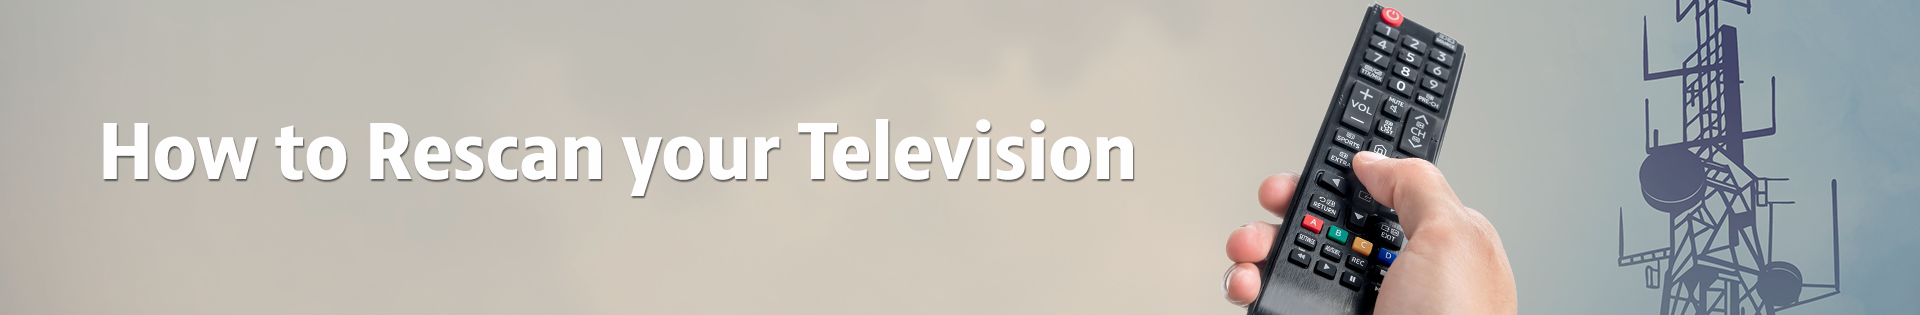 How to Rescan you Televisoin